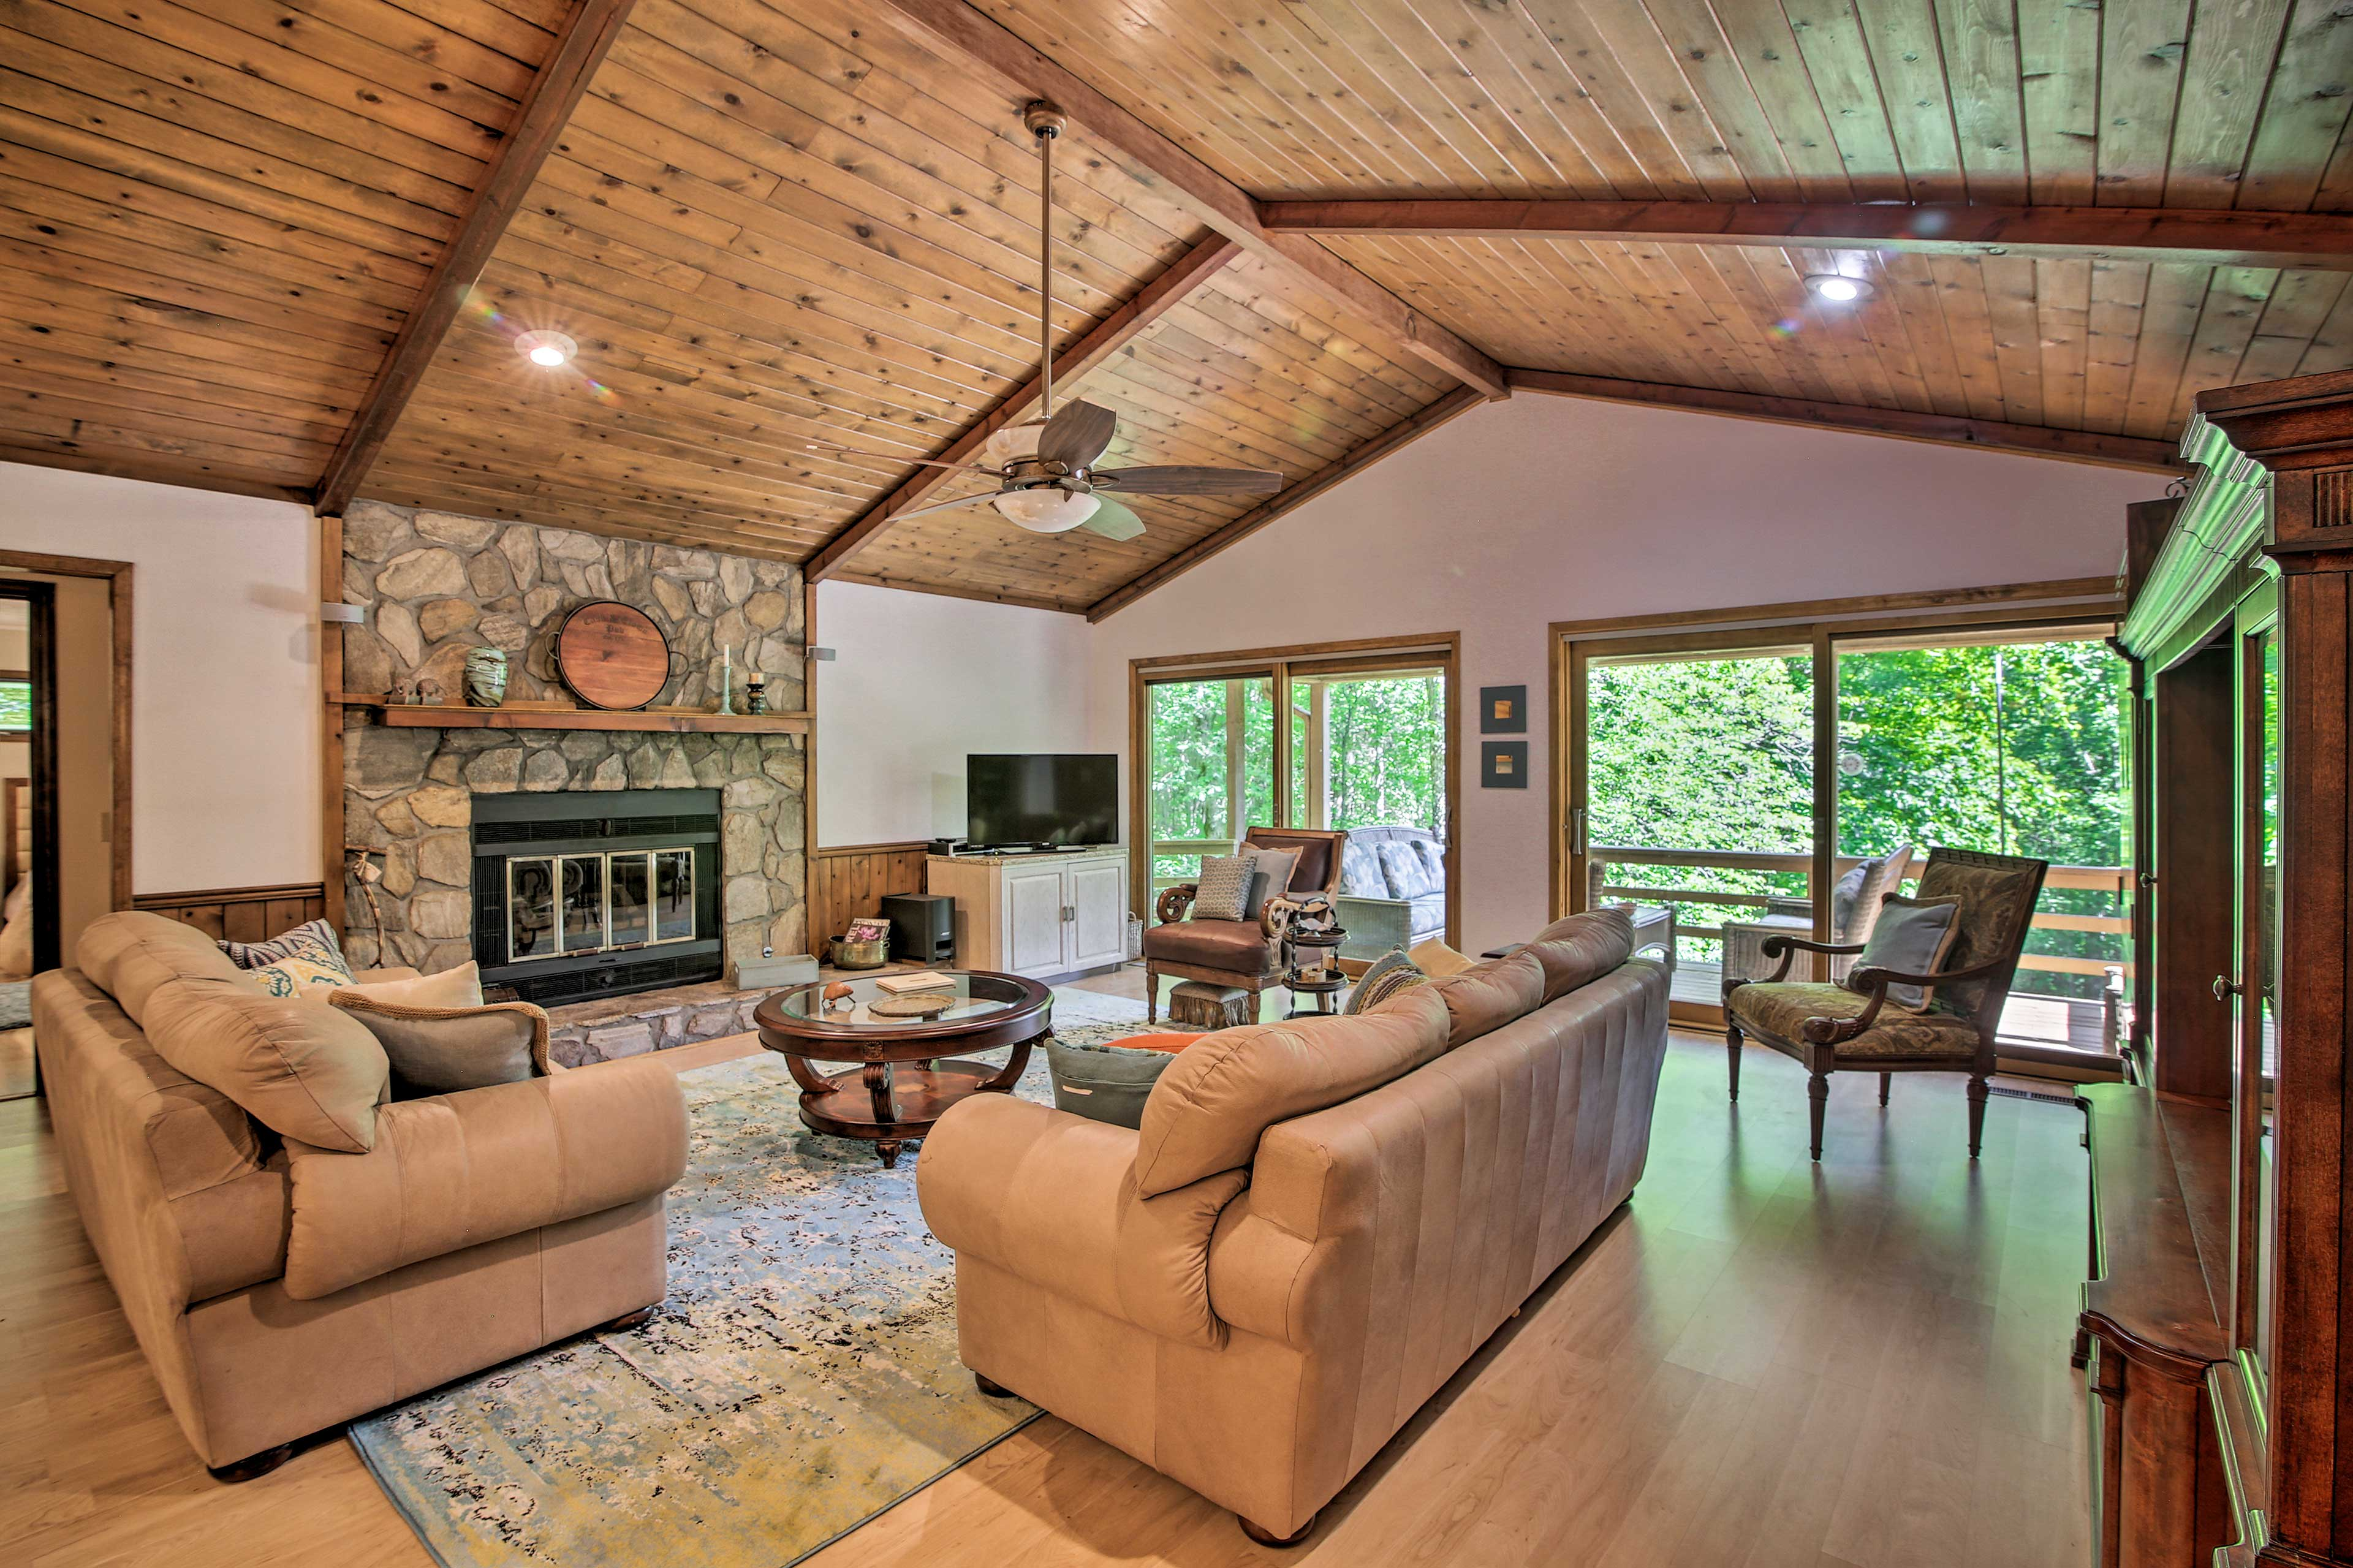 This homey Sky Valley, GA vacation rental is calling your name!